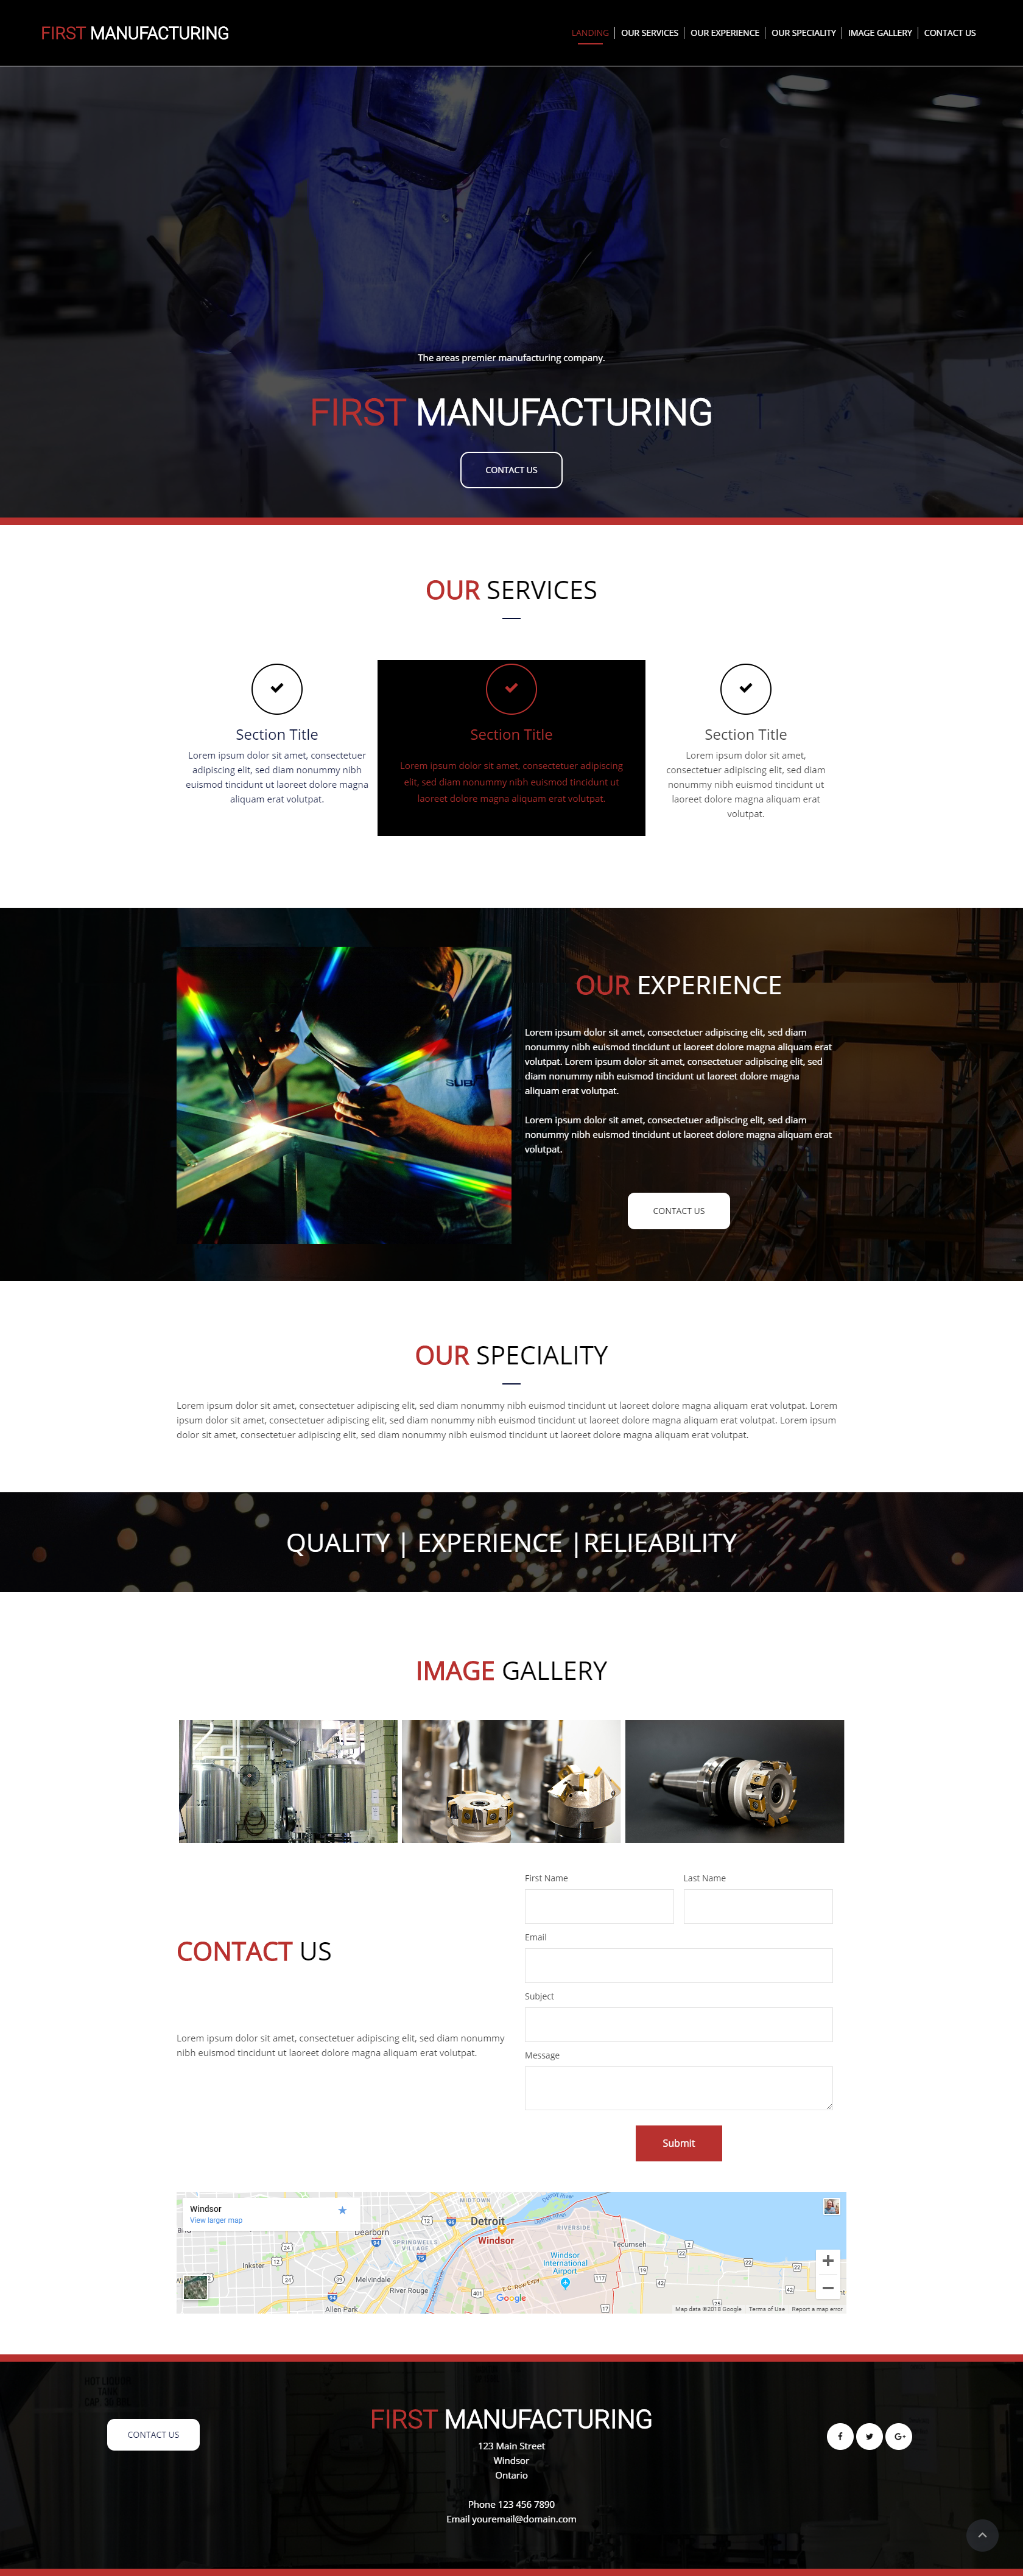 Manufacturing Company Website Use This Template For Free At Webzooler Com Website Template Design Small Business Online Web Template Design